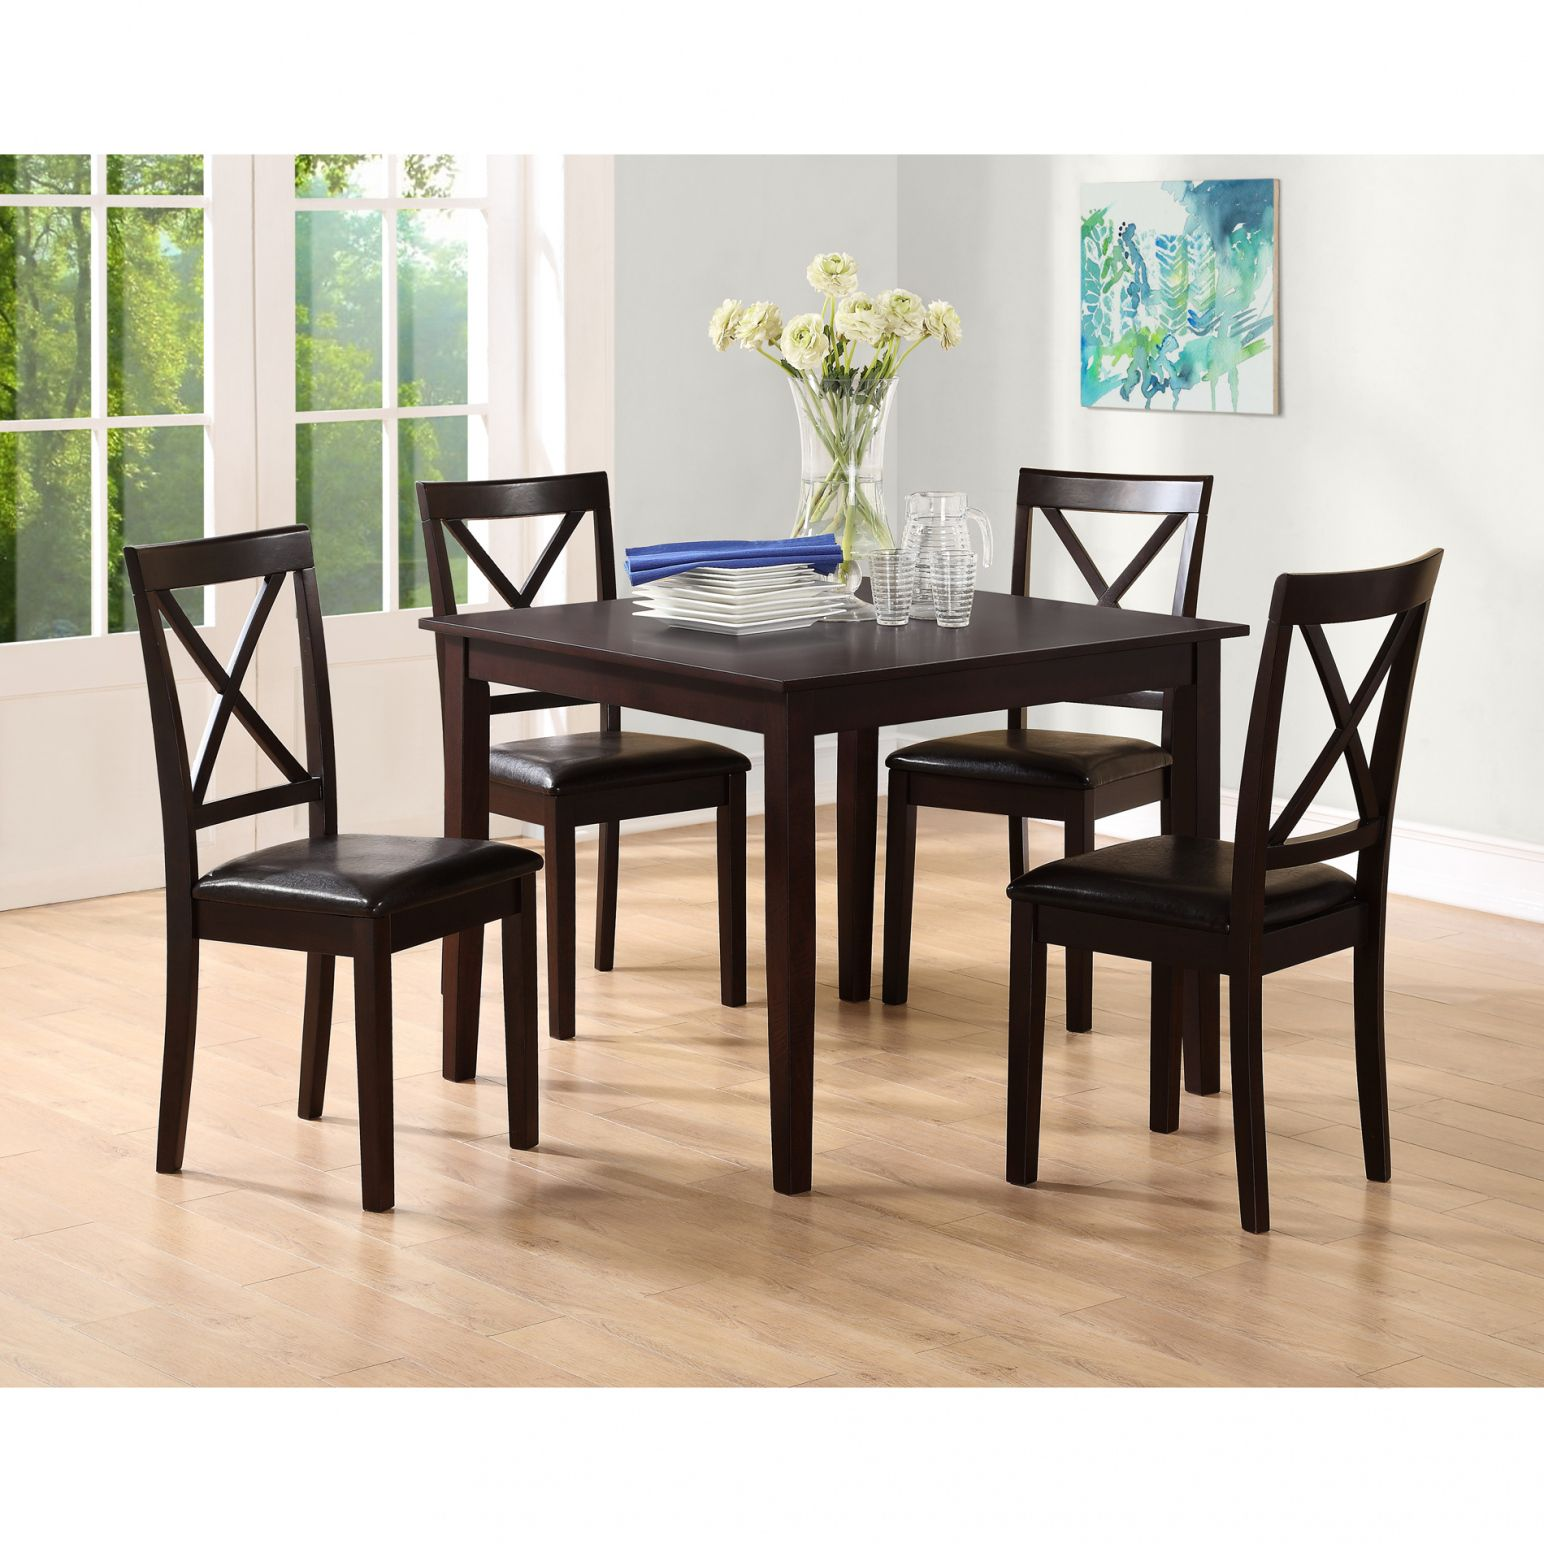 100 Kmart Kitchen Tables And Chairs  Kitchen Design Ideas Images Gorgeous Kmart Kitchen Chairs Inspiration